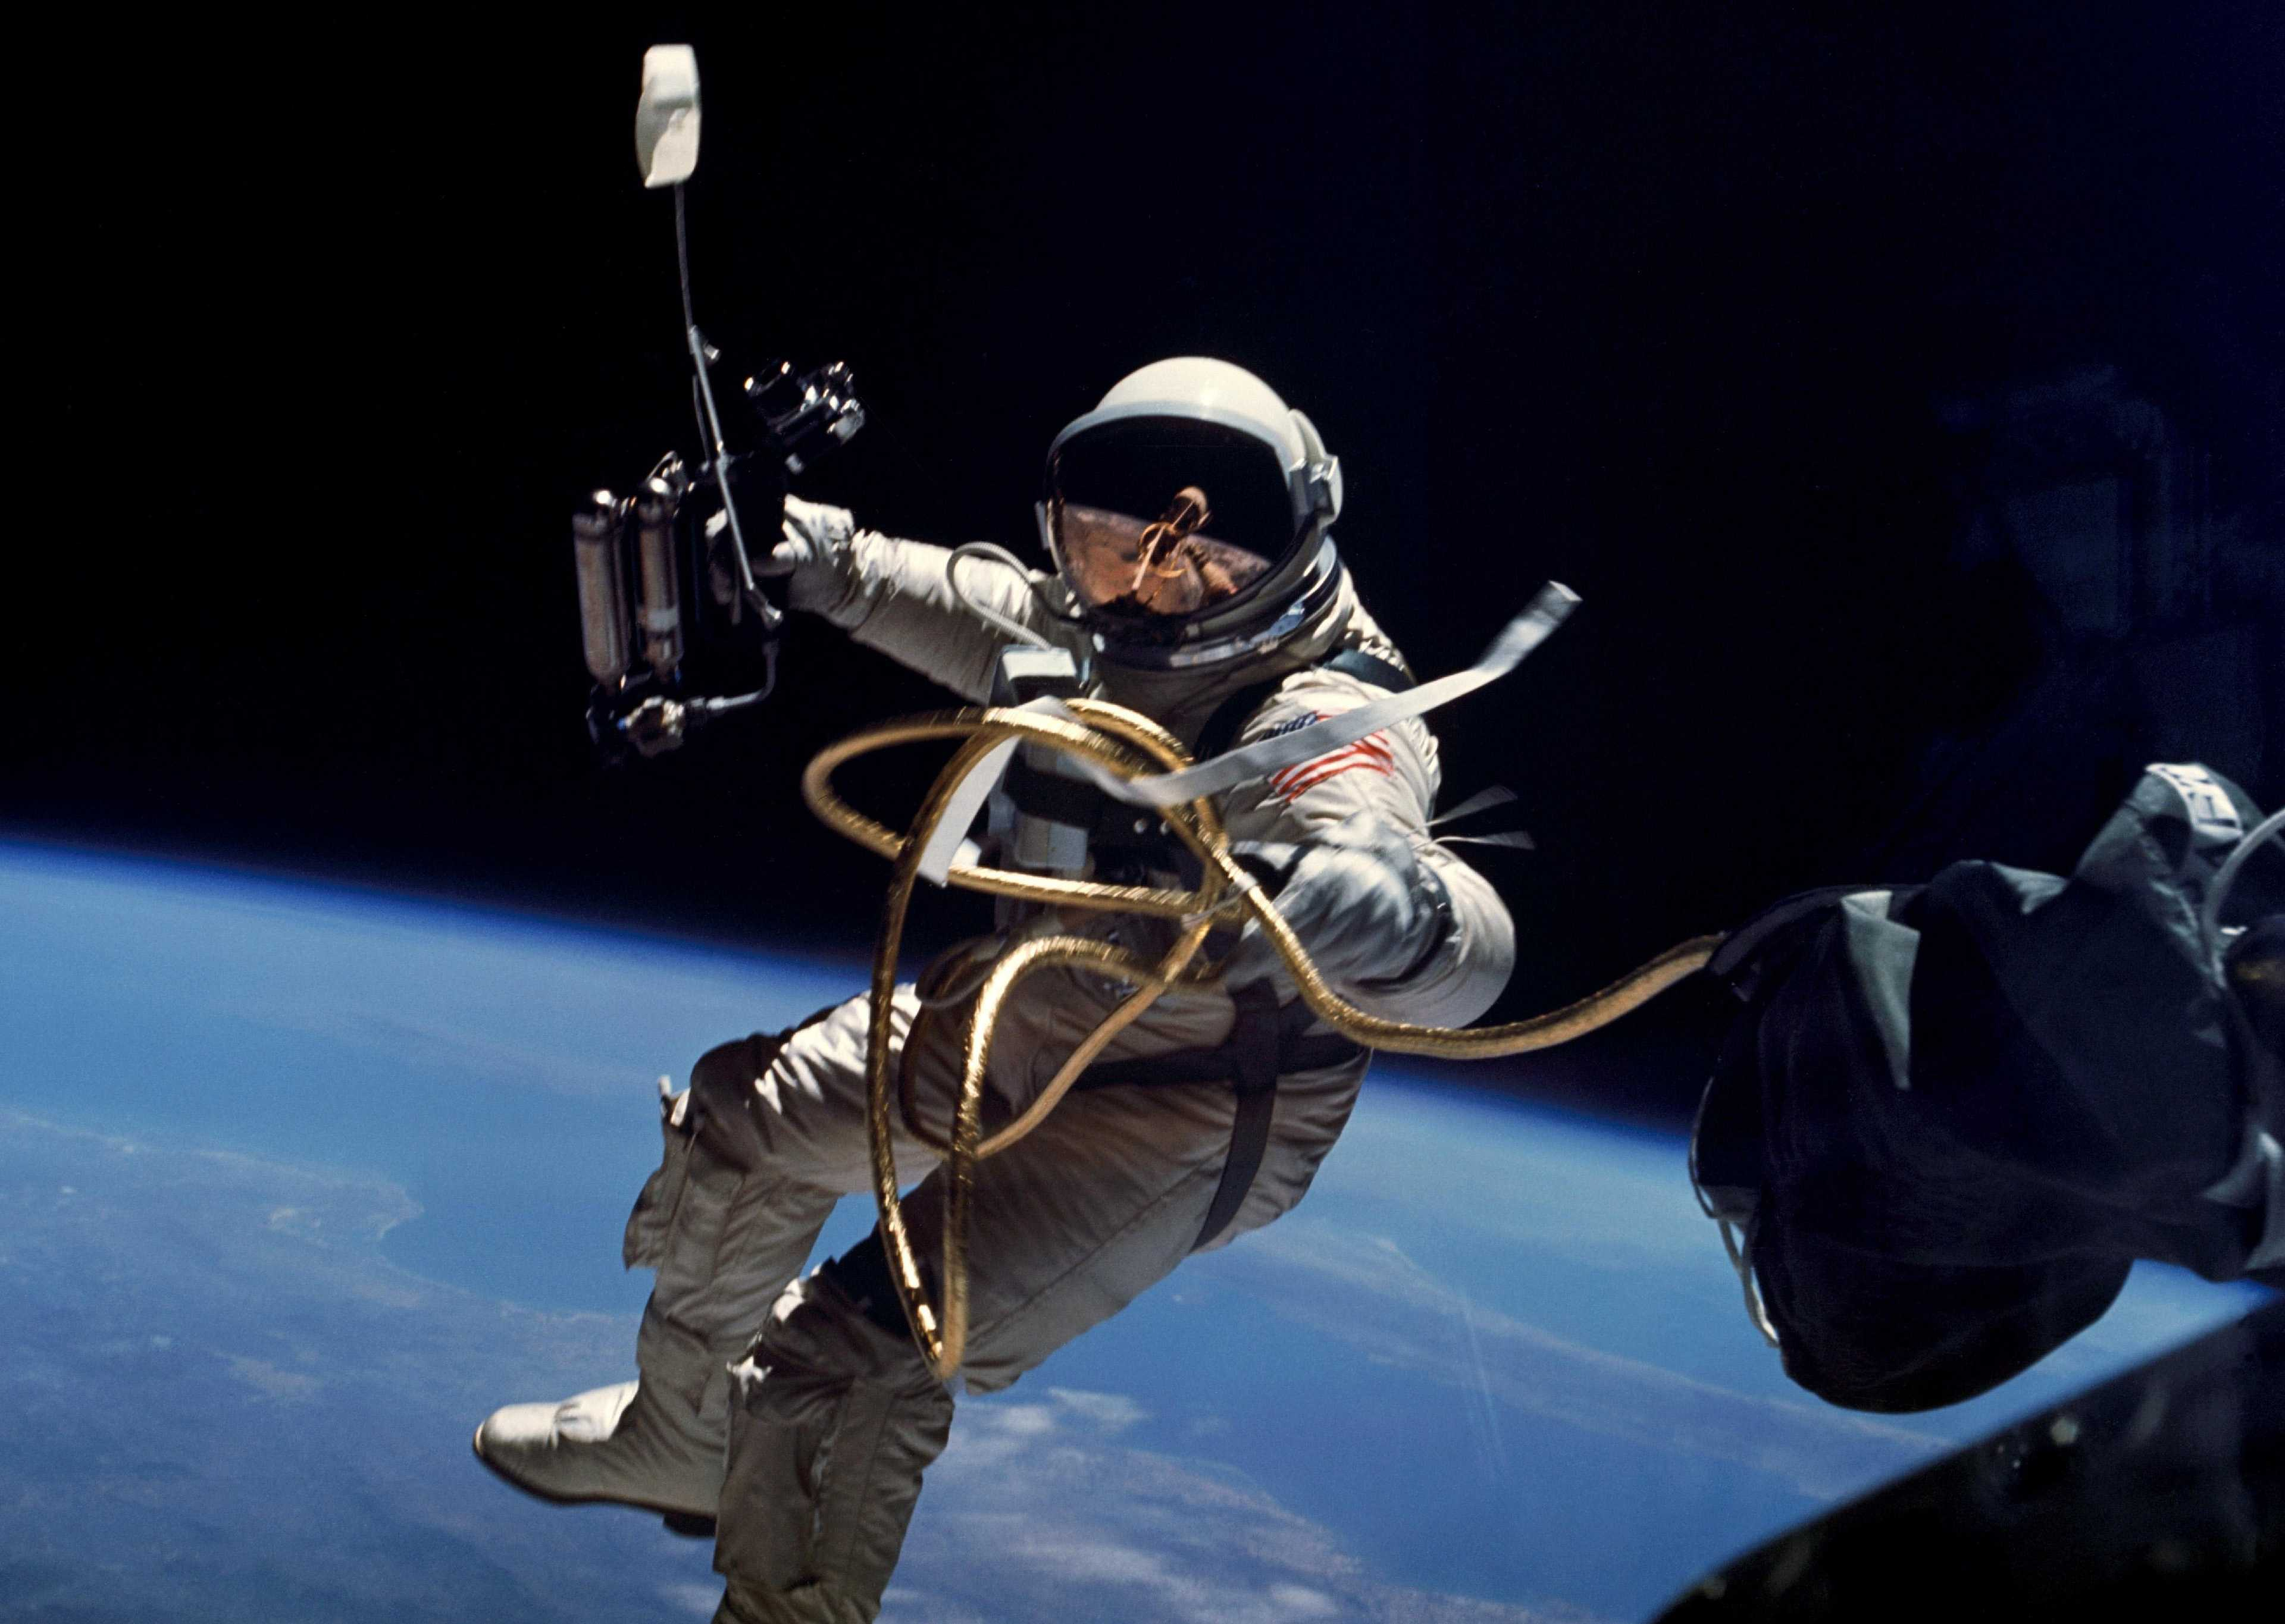 astronaut Edward White in space with the earth below him. a gold tether keeps him attached to Gemini 4.